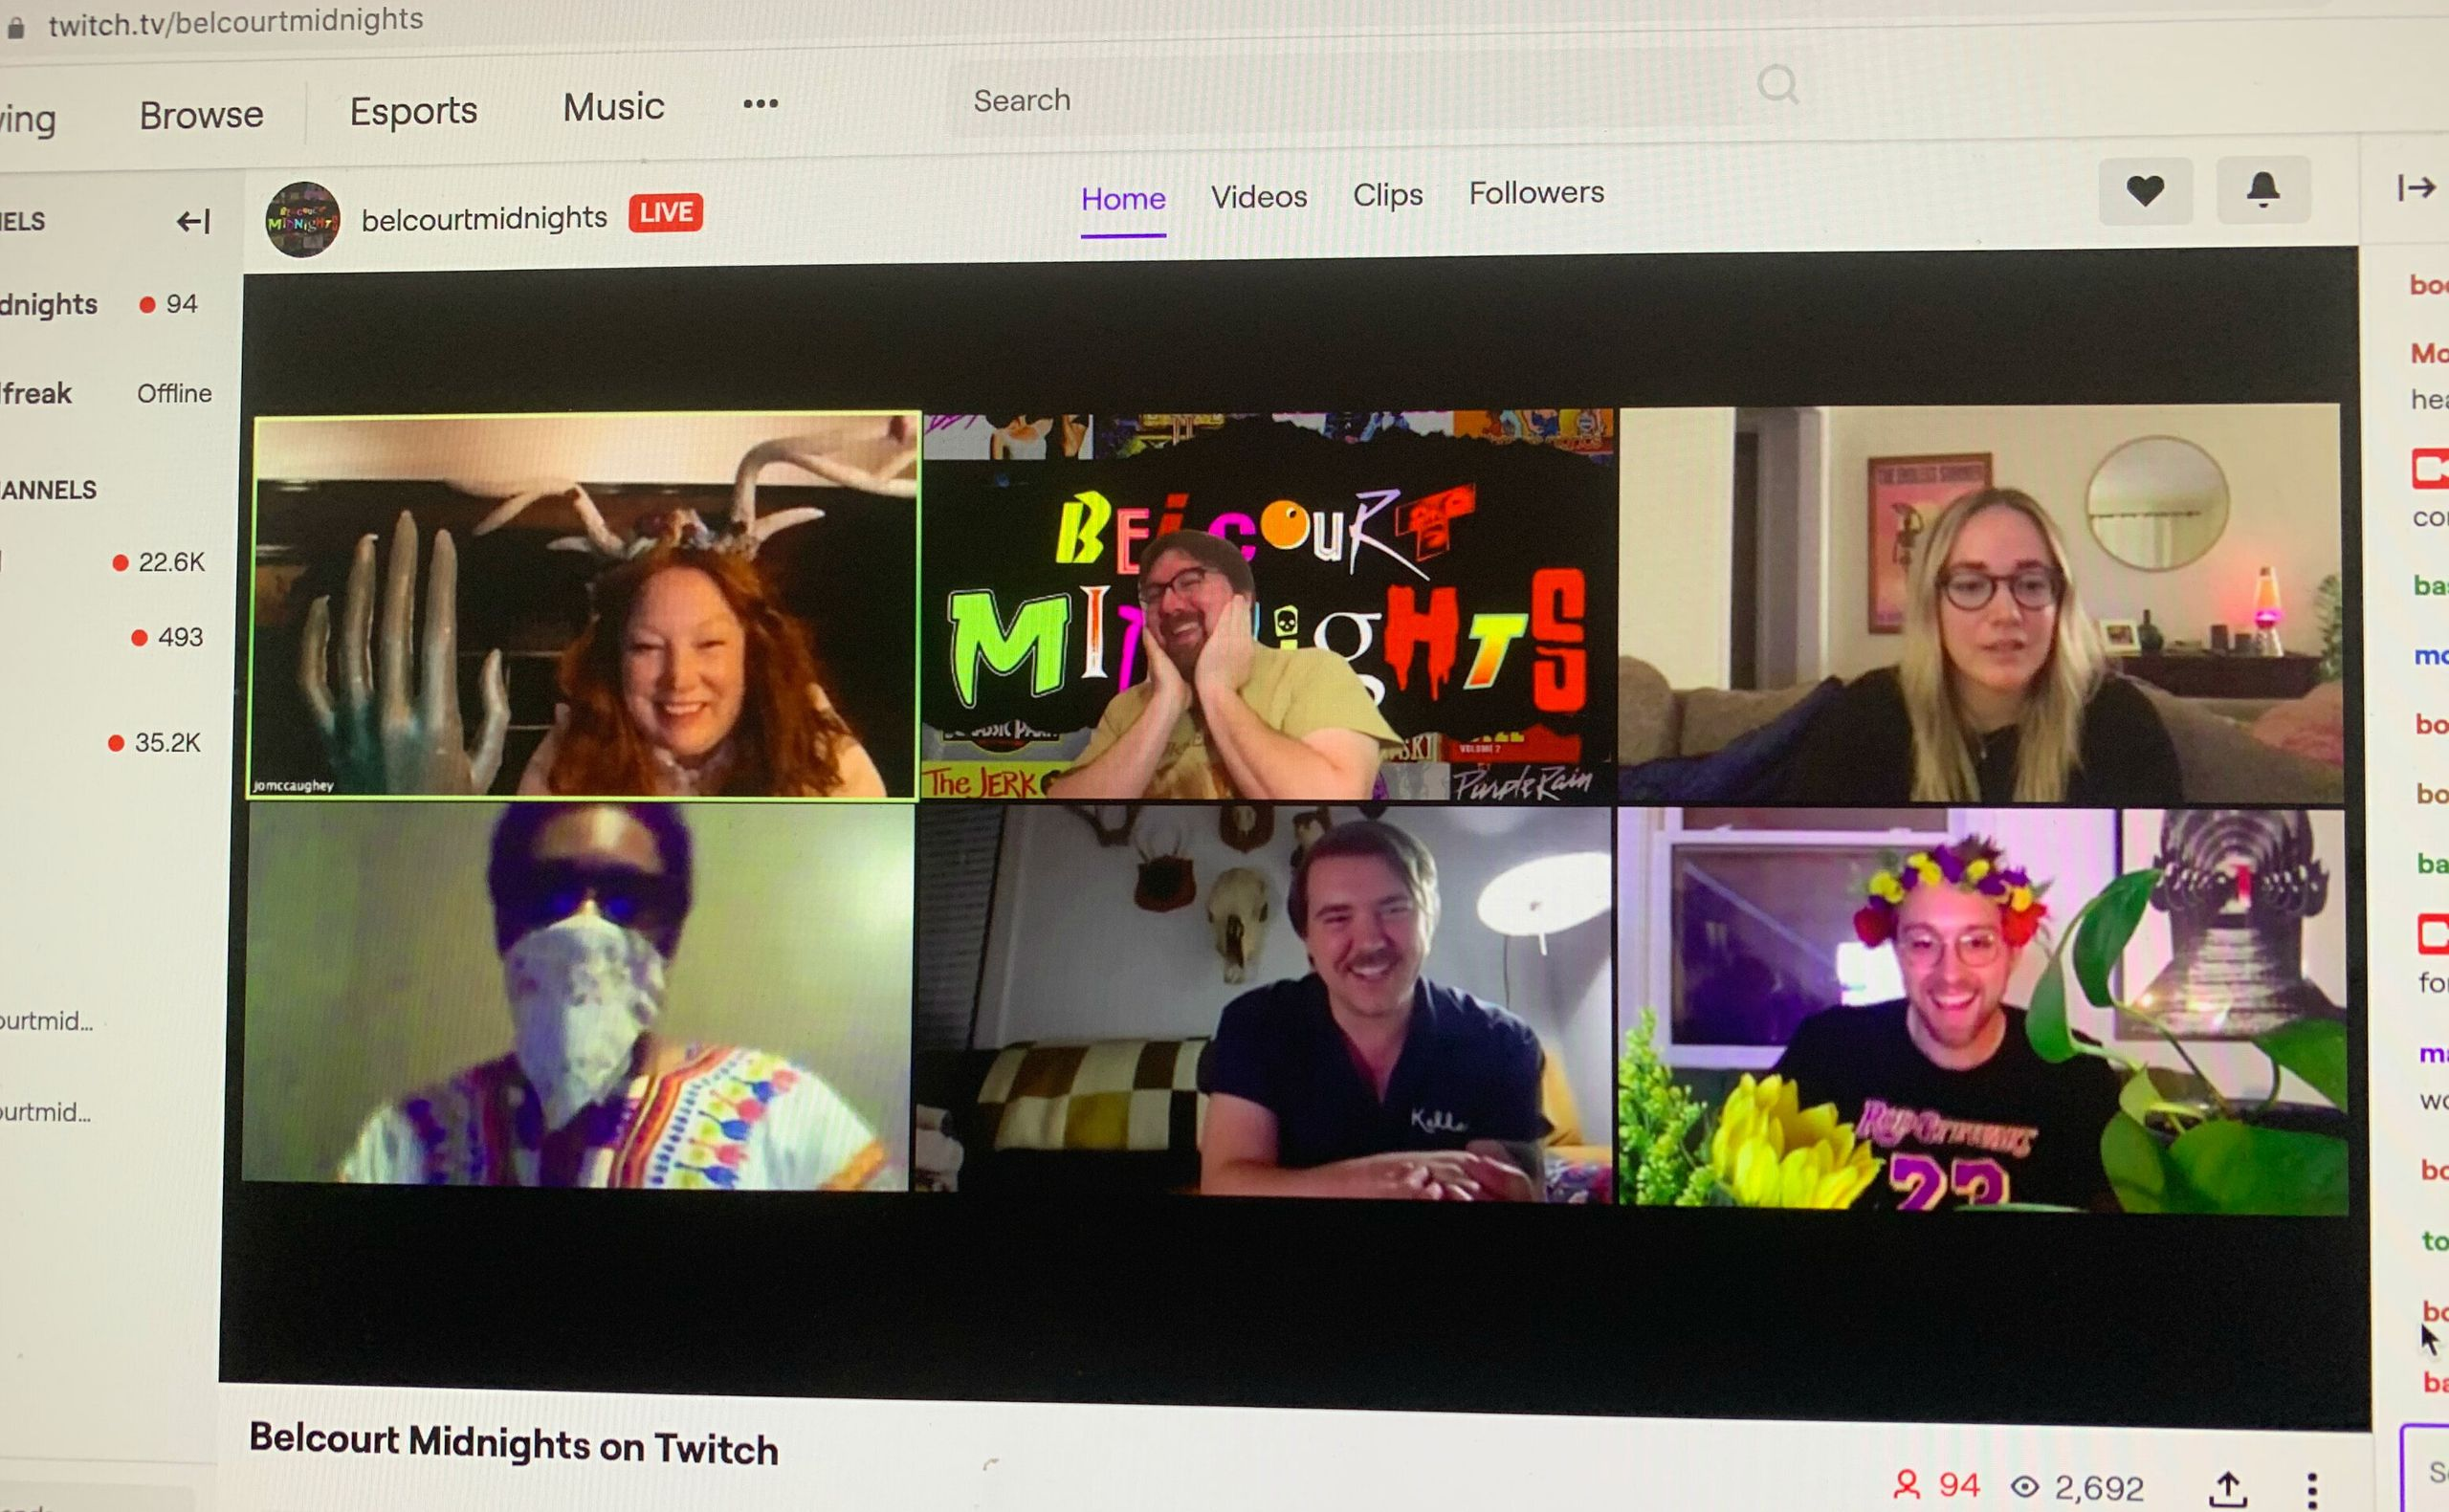 A screengrab of a Belcourt Midnights viewing on Twitch.